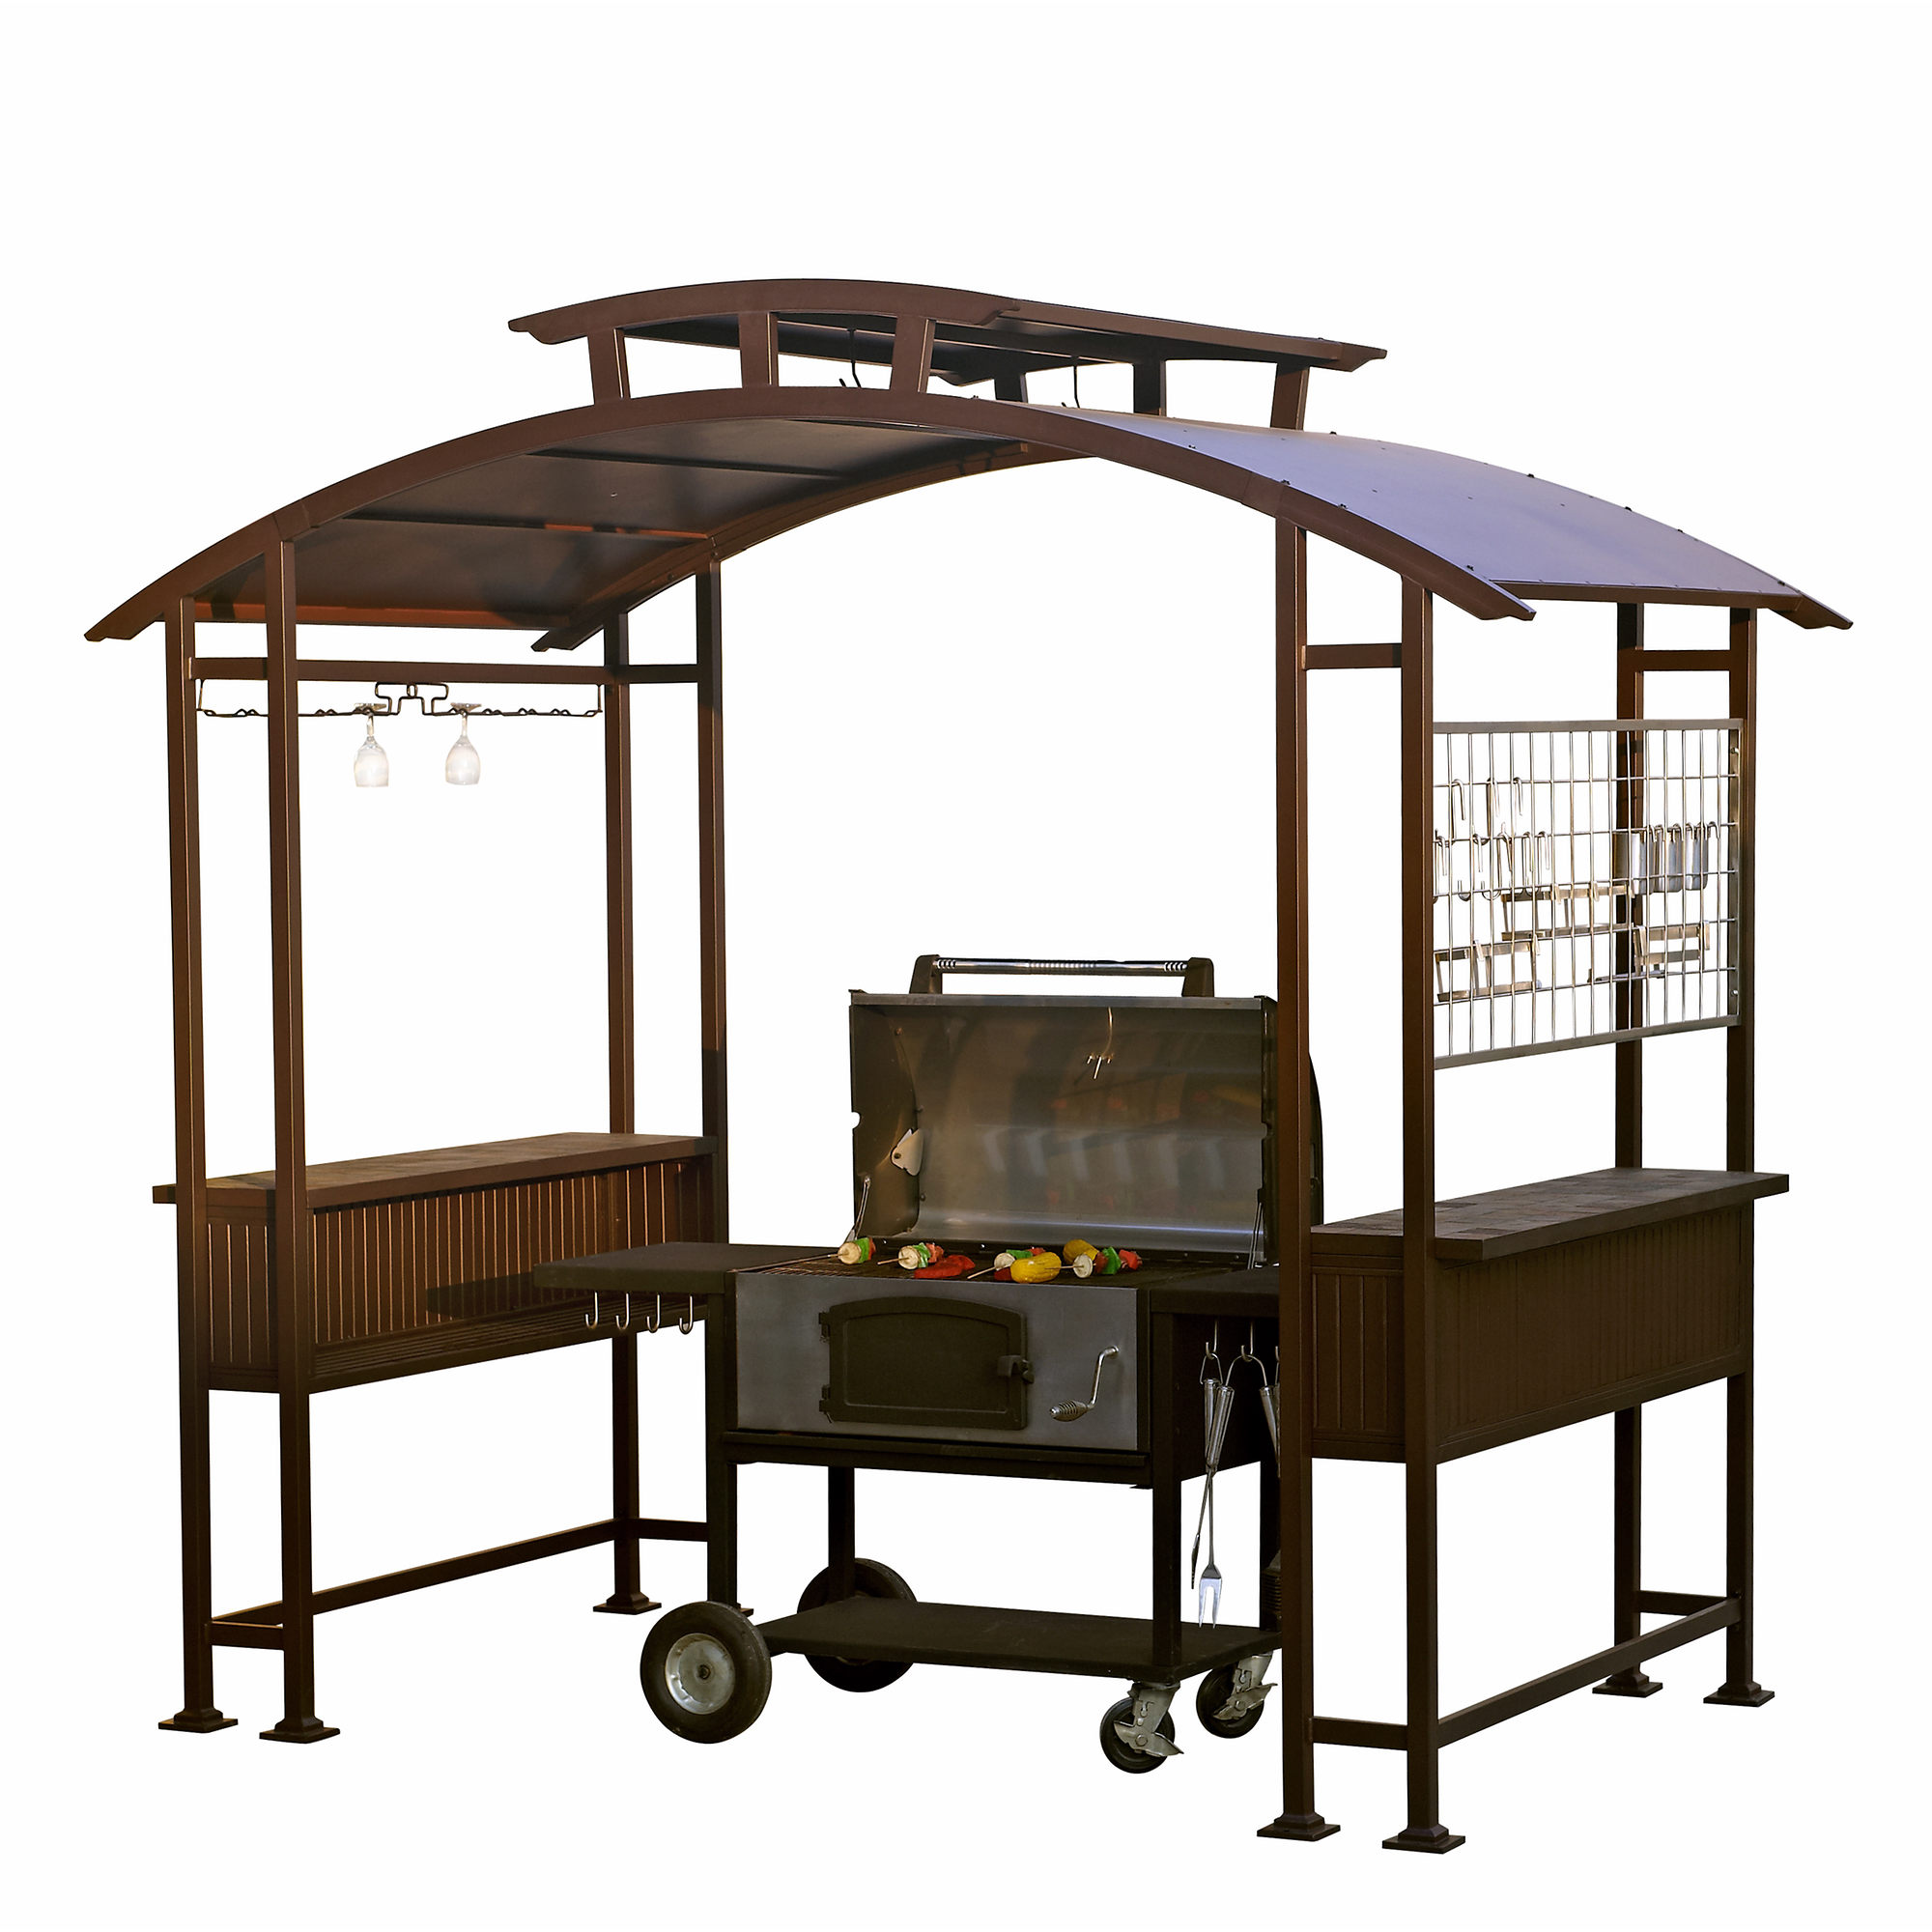 Interesting sunjoy gazebo for garden ideas with sunjoy hardtop gazebo and sunjoy grill gazebo